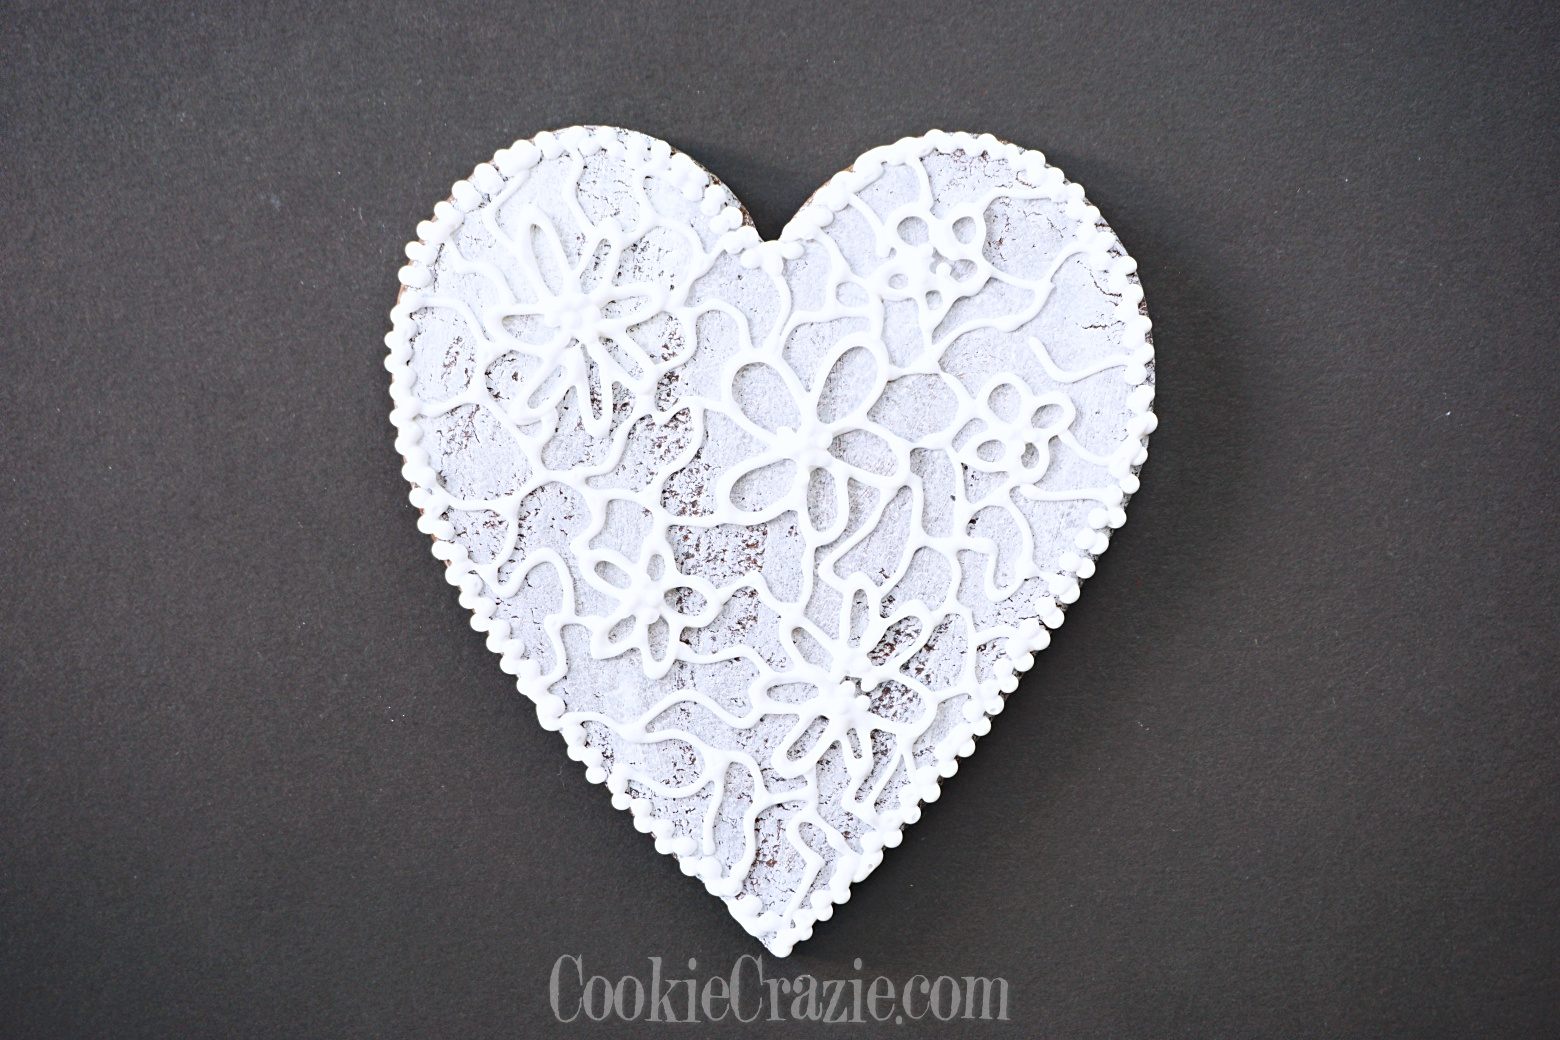 Lacy Valentine Heart Decorated Sugar Cookie YouTube video  HERE